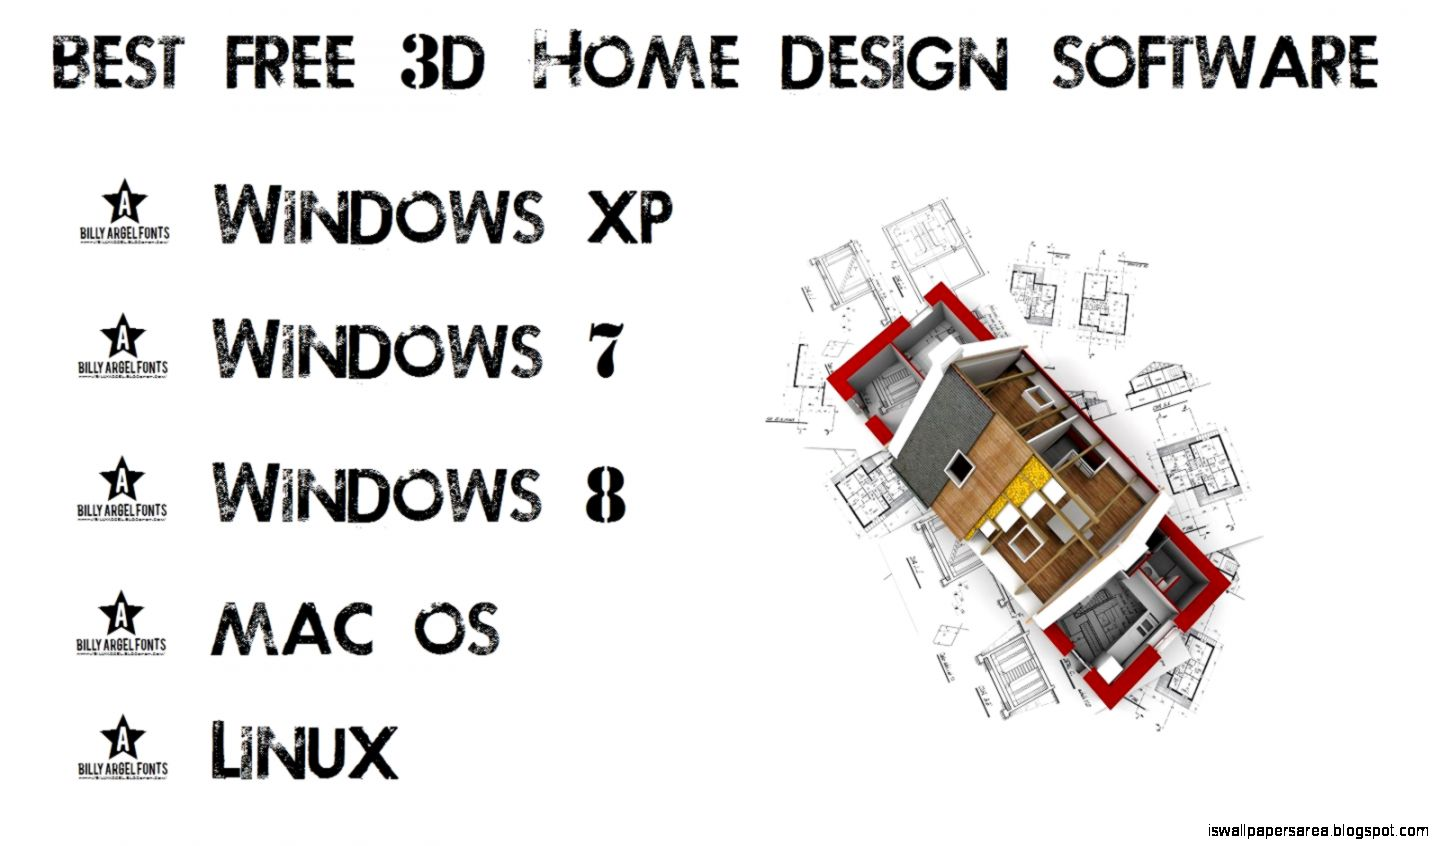 Home Designing Free Download | Wallpapers Area on house plans search, house plans software, house plans design, house plans rock, house plans facebook, house plans projects, house plans magazines, house plans books, house plans home, house plans templates, house plans diy, house plans family, house plans sketches, house plans art, house plans forum, house plans help, house plans models,